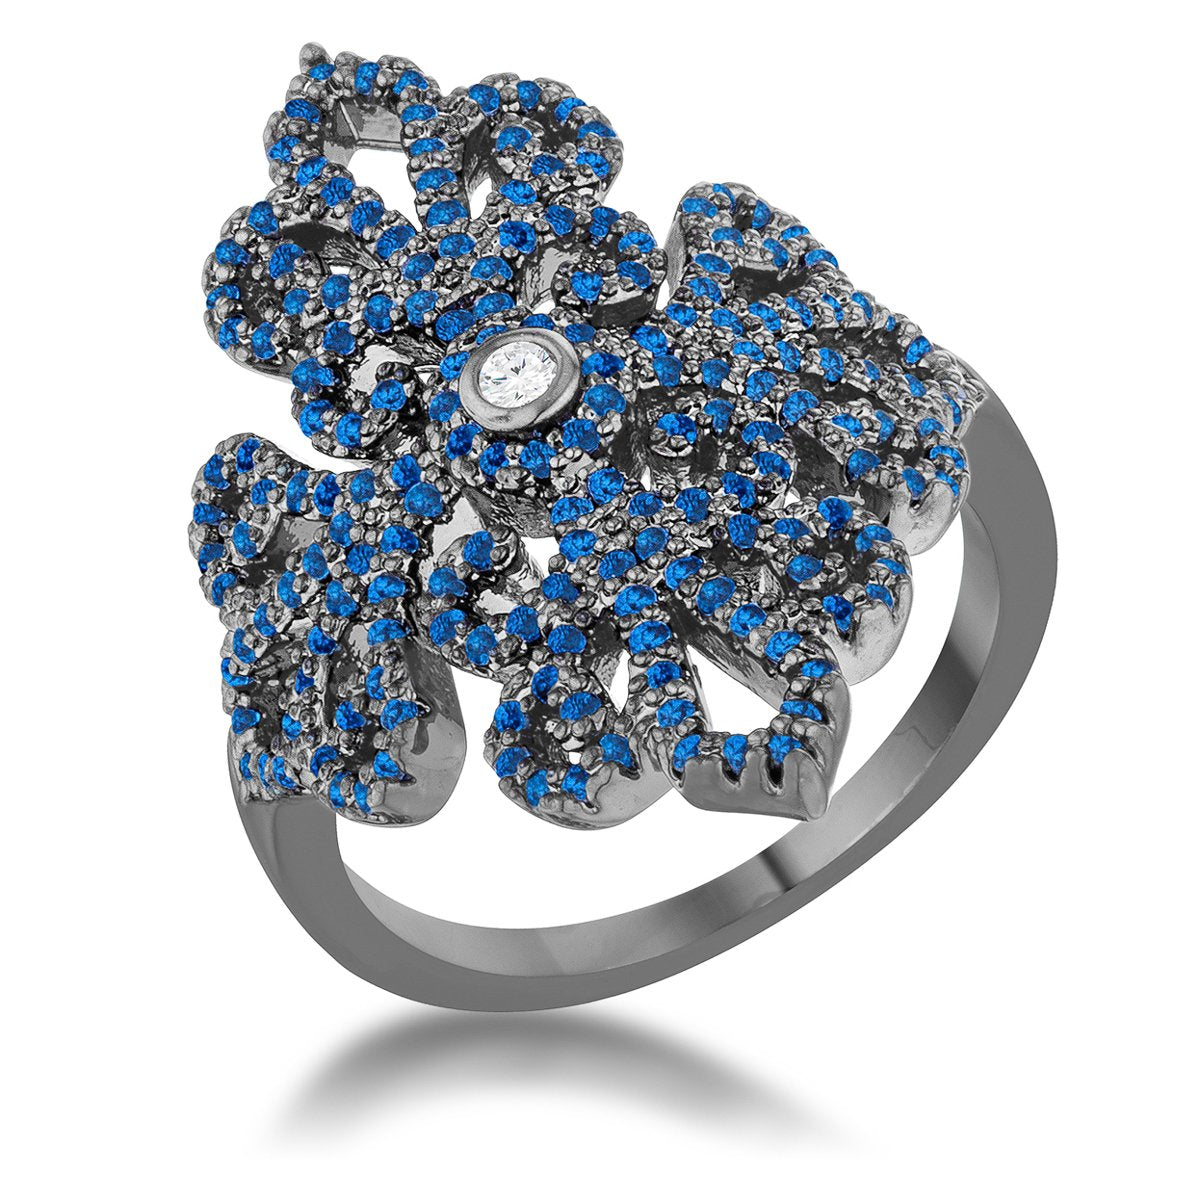 Victoria 1.23ct Sapphire CZ Hematite Filigree Cocktail Ring - Rings - KA Designs Online